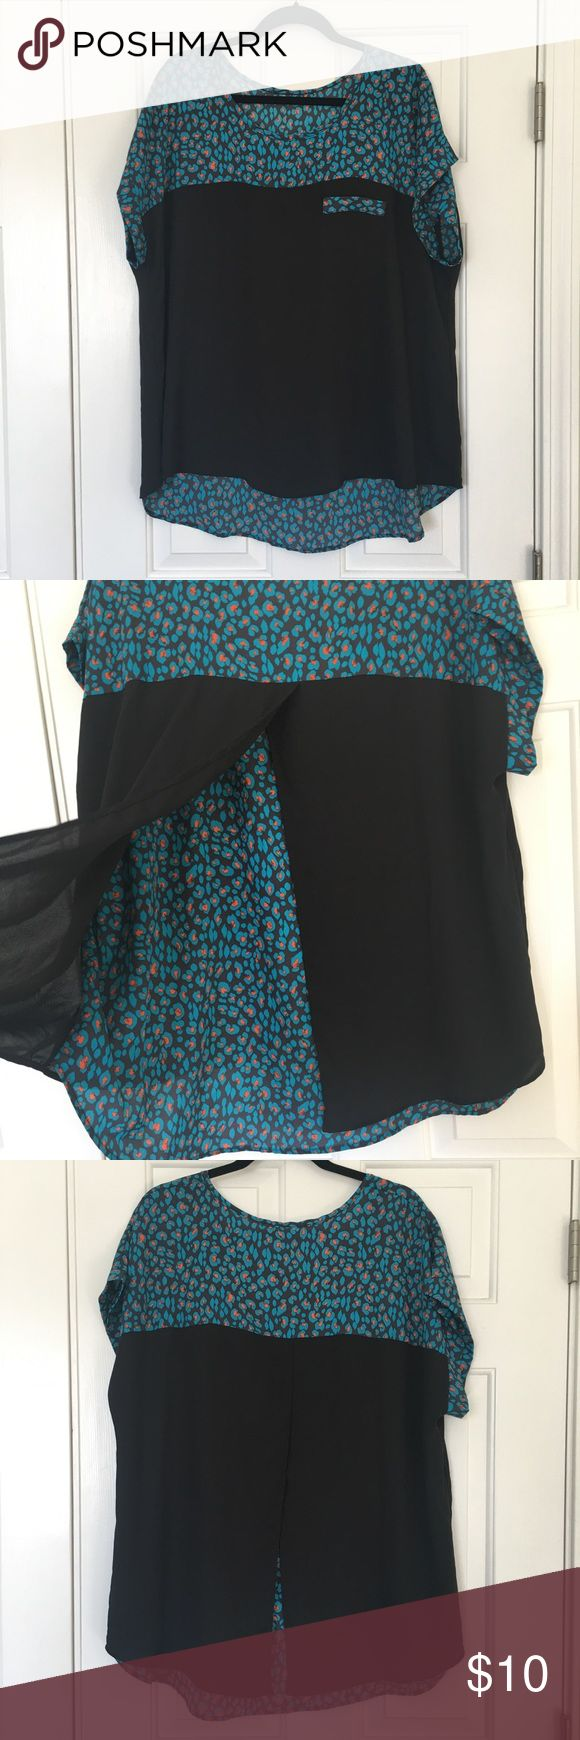 """Black split back short sleeve top Black teal and orange short sleeve Chiffon top  The brand tag has been removed, material content tag is still attached. Made of 100% polyester with hand wash instructions on the care tag  Length of top is about 28"""" in the front and 31"""" in the back bust is about 52"""" No stretch to the fabric. Back is cut away split style with the pattern material showing. Smoke free home none Tops Blouses"""